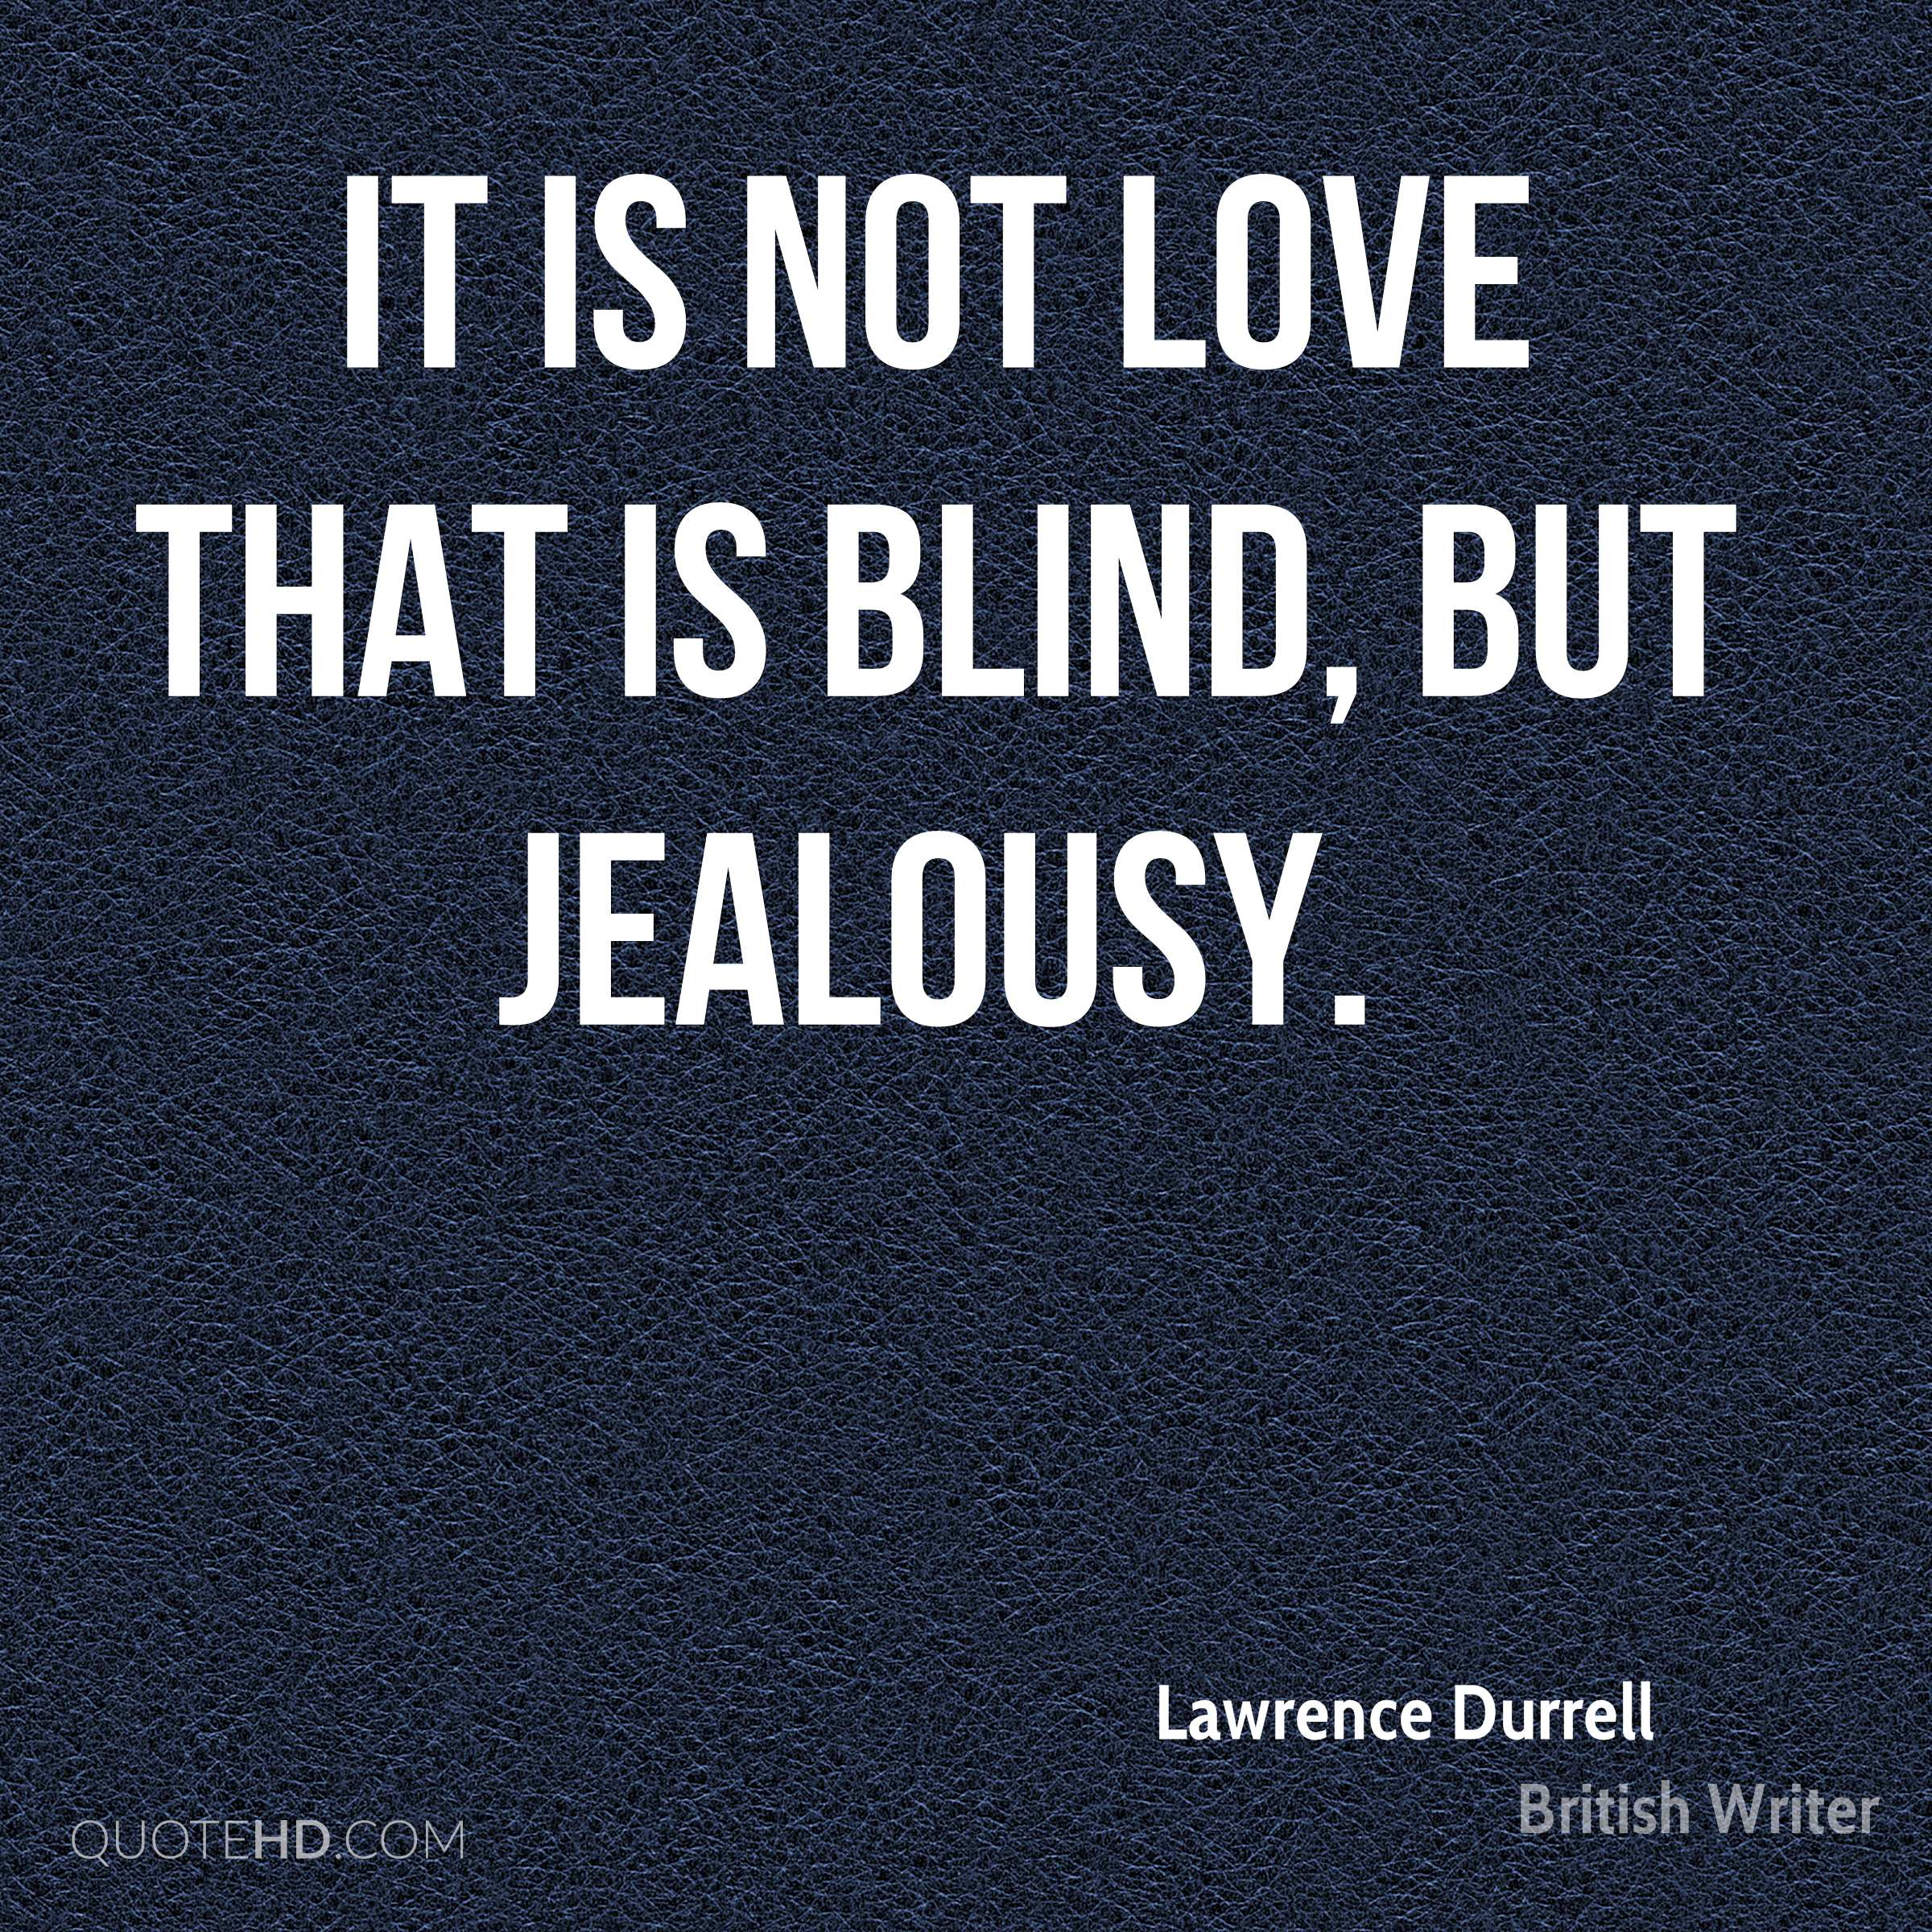 Love Jealousy Quotes Lawrence Durrell Love Quotes  Quotehd